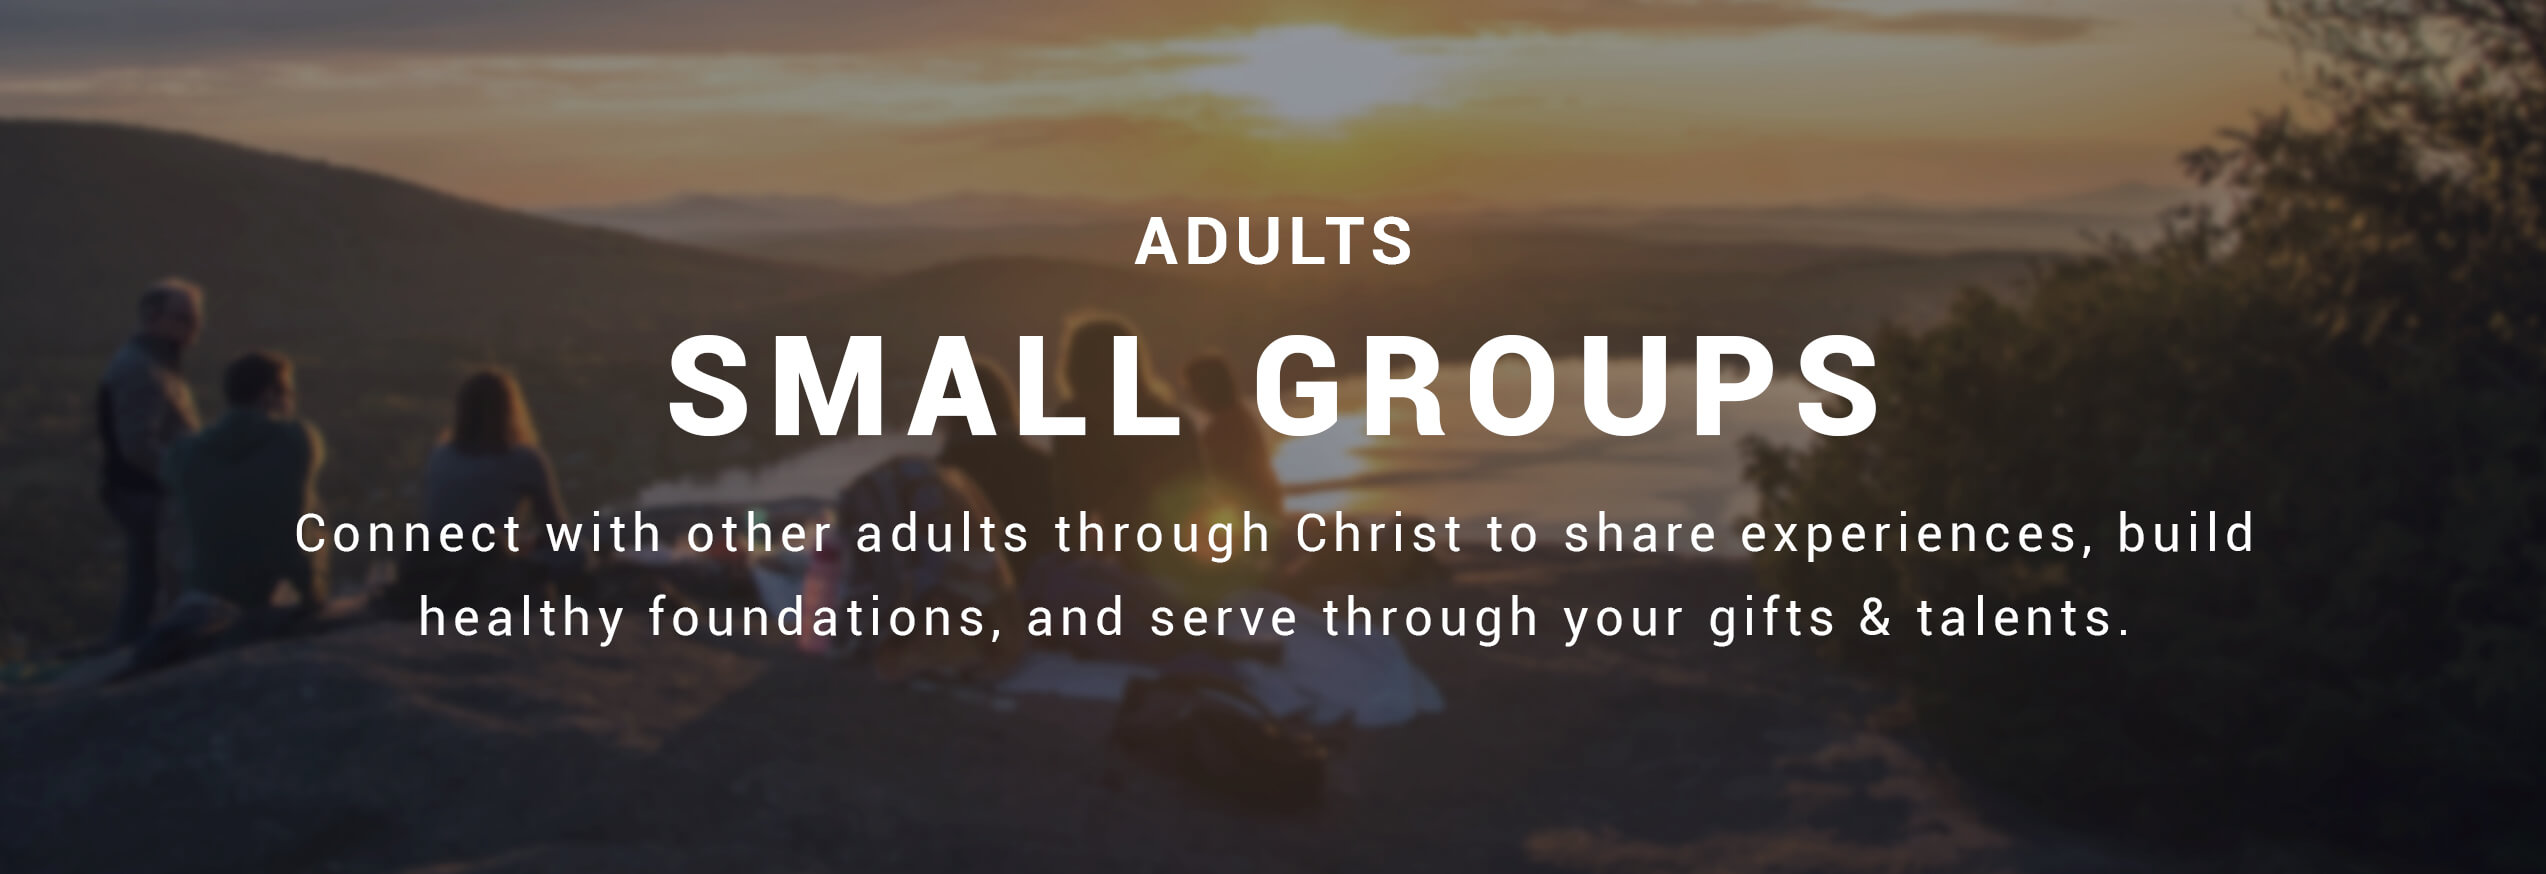 Small Groups Banner